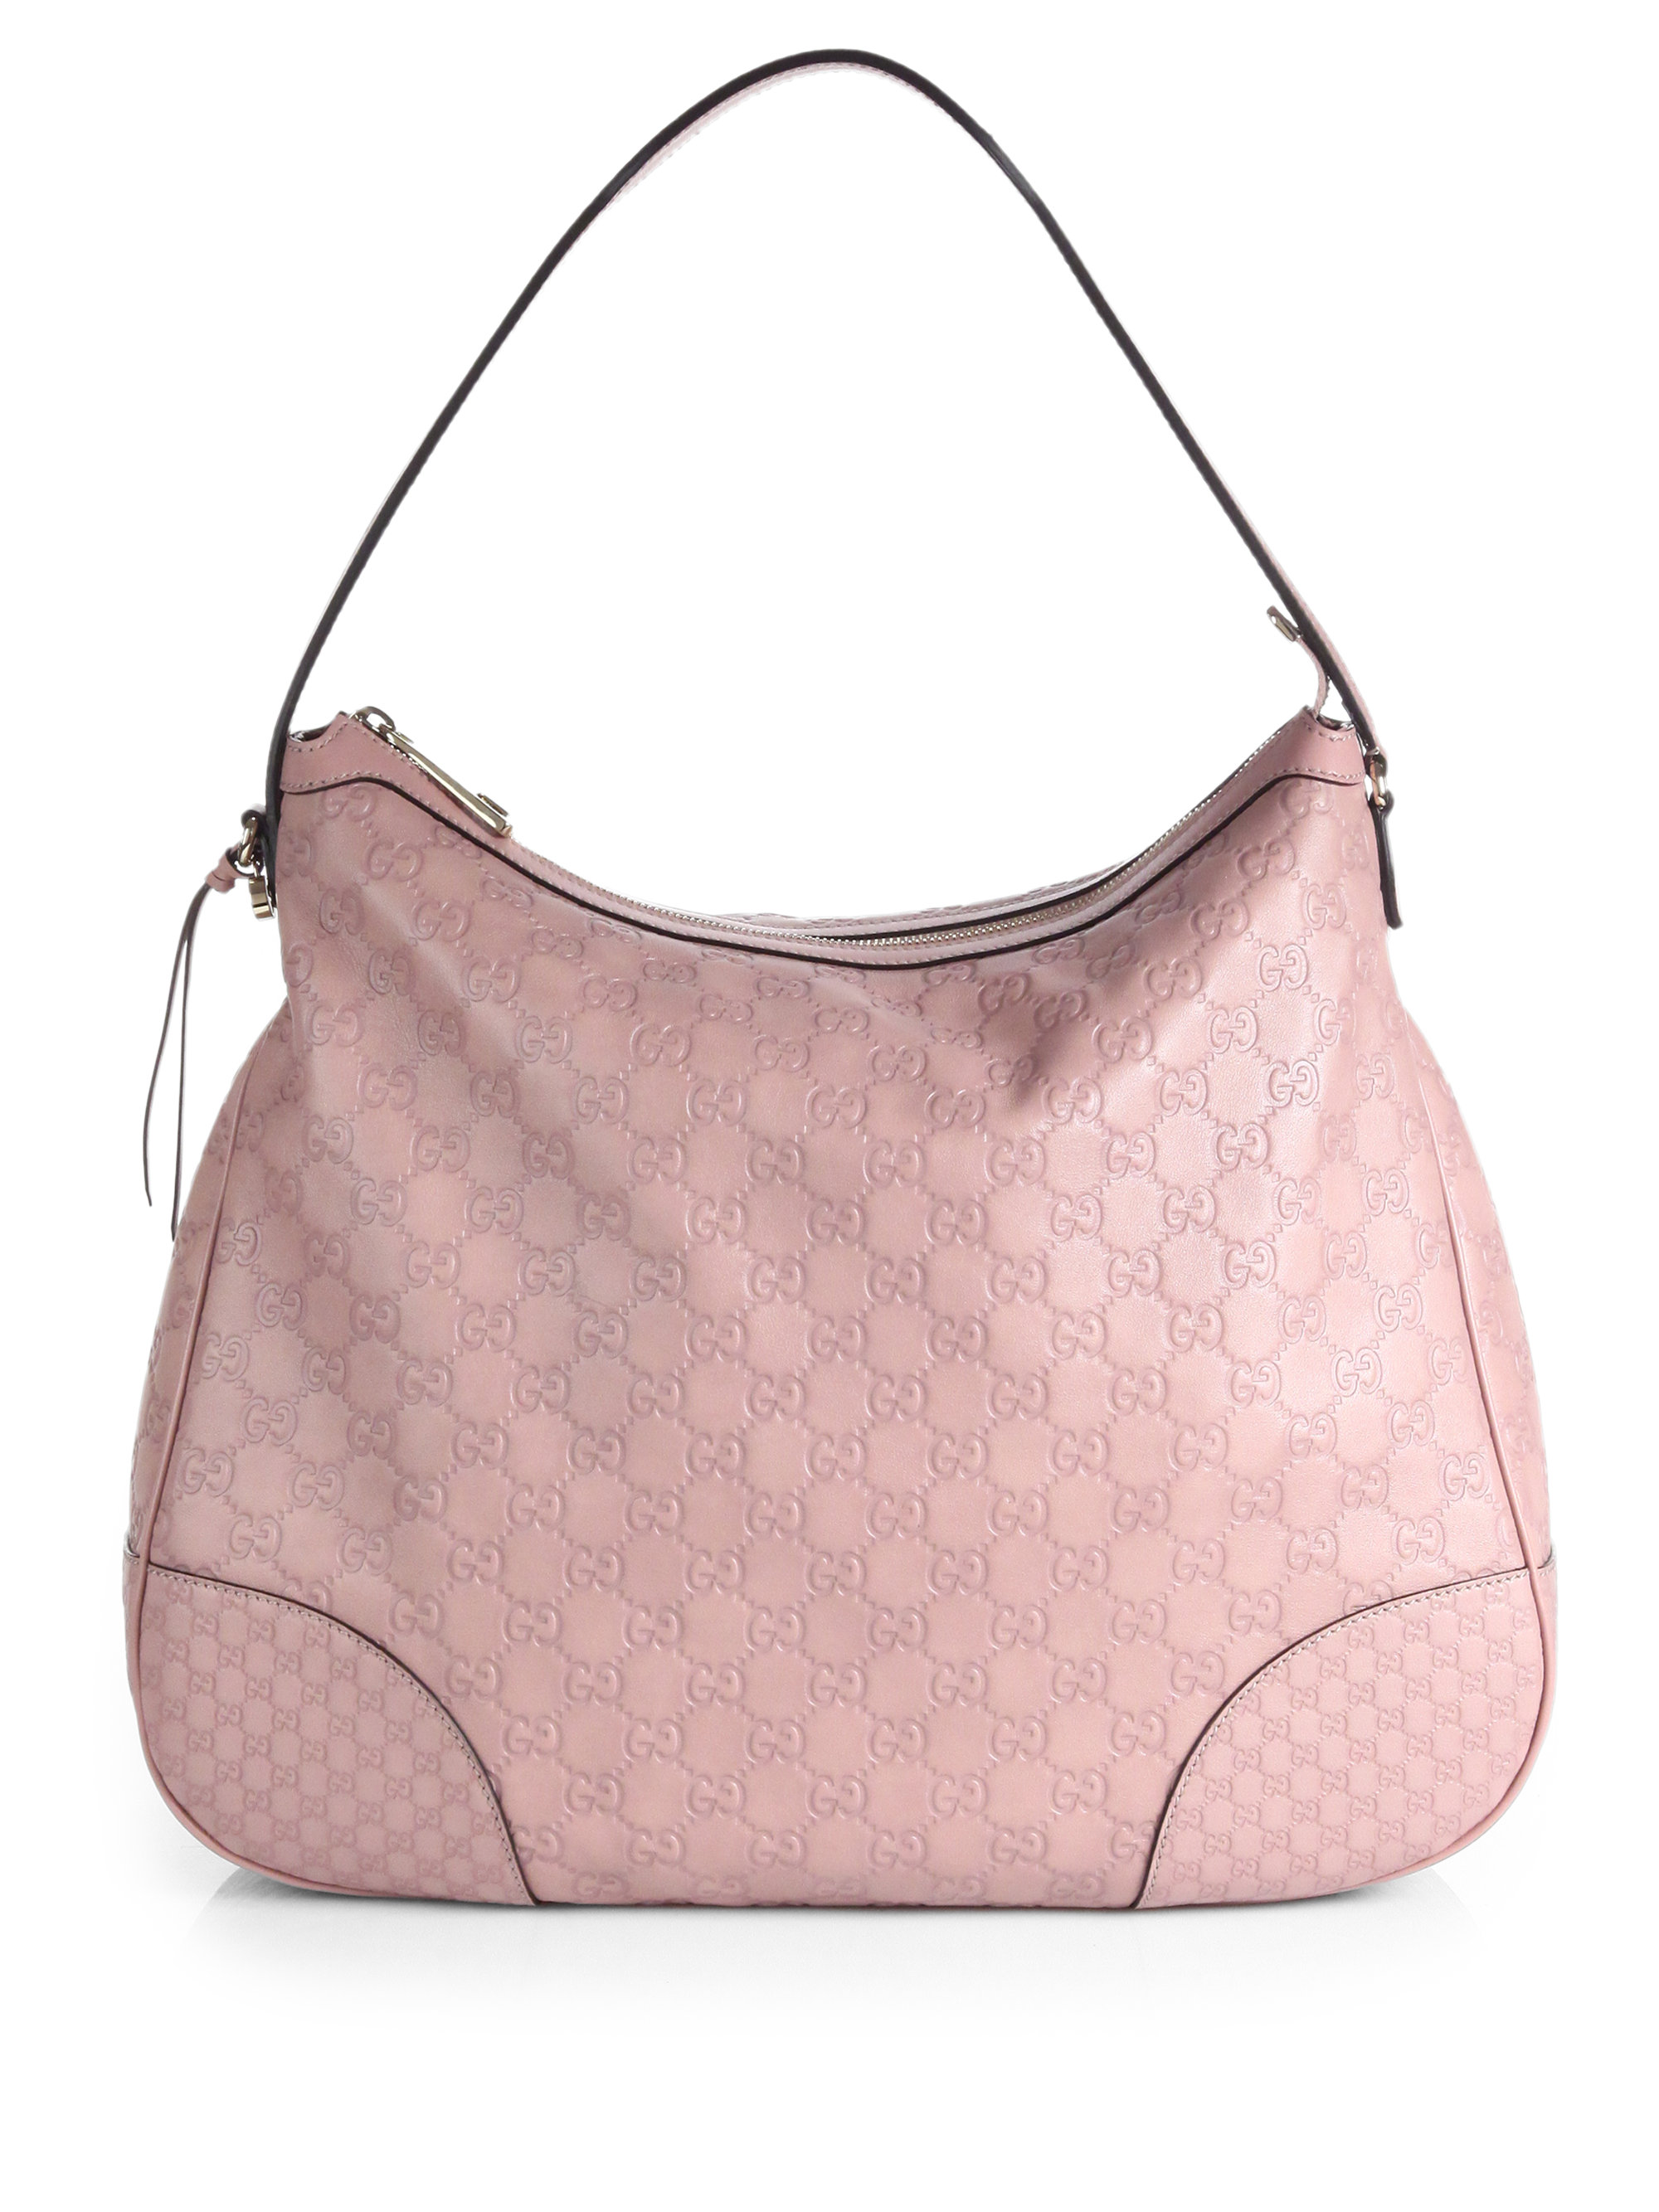 Gucci Bree Ssima Leather Hobo Bag in Pink - Lyst 30cd59905d